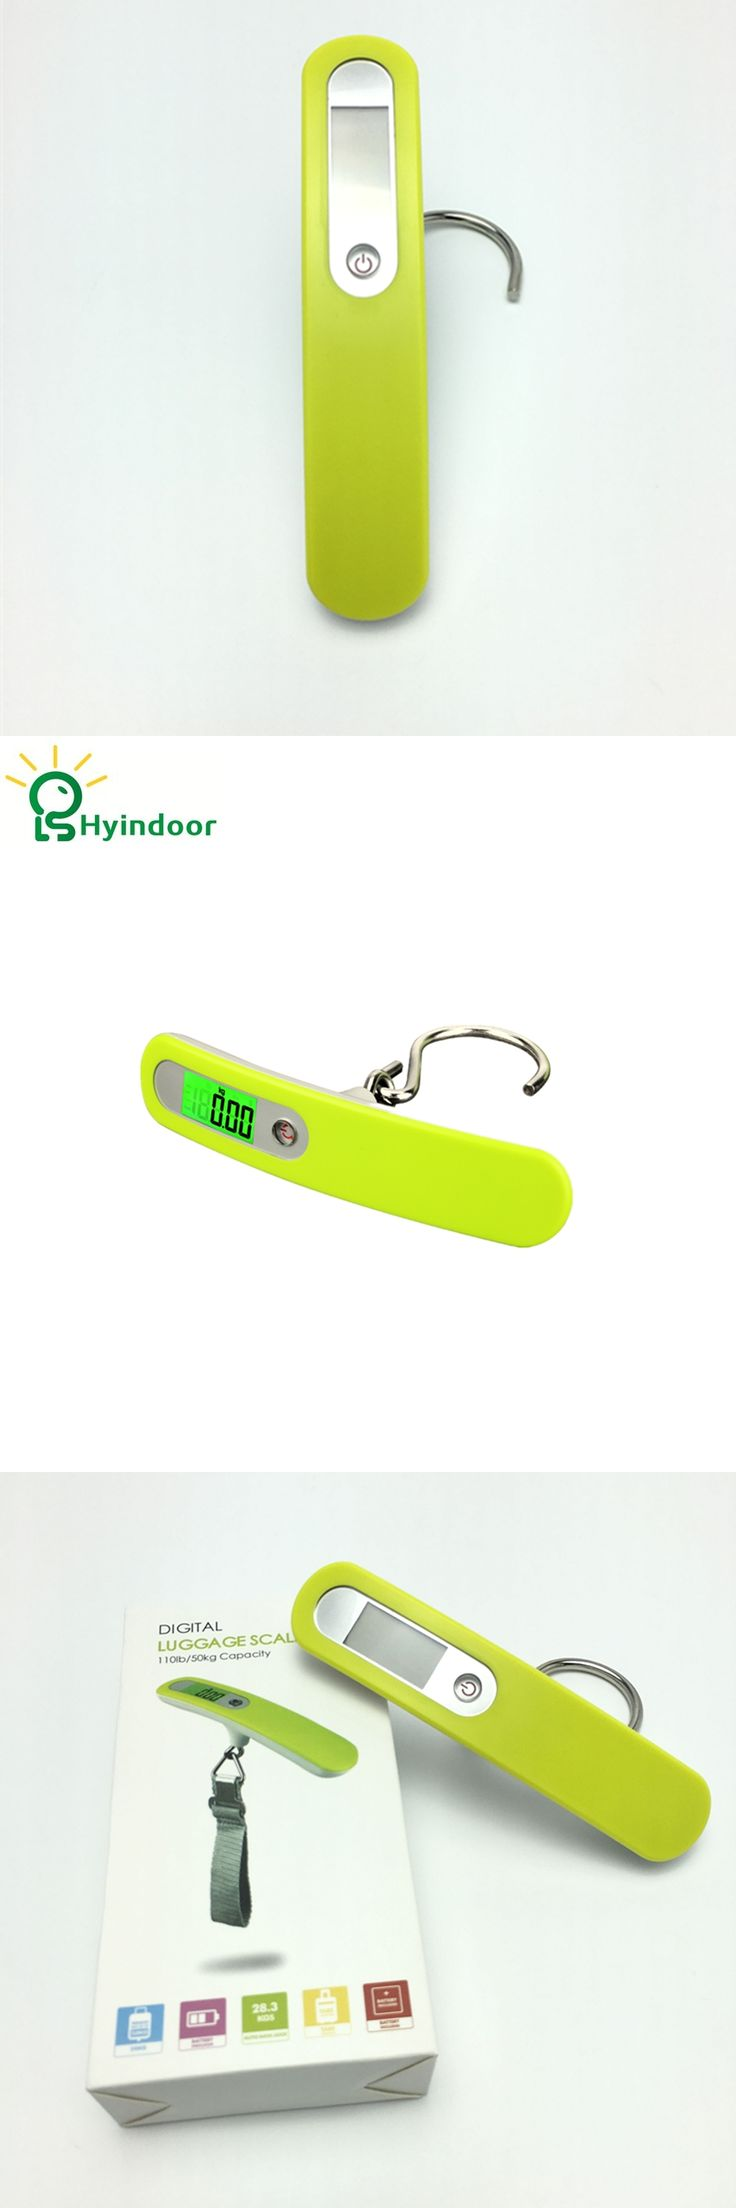 50kg/10g Luggage Scale LCD Electronic Pocket Hanging Scale Portable Electronic Travel Suitcase Bag Weighing balance scale,Hook